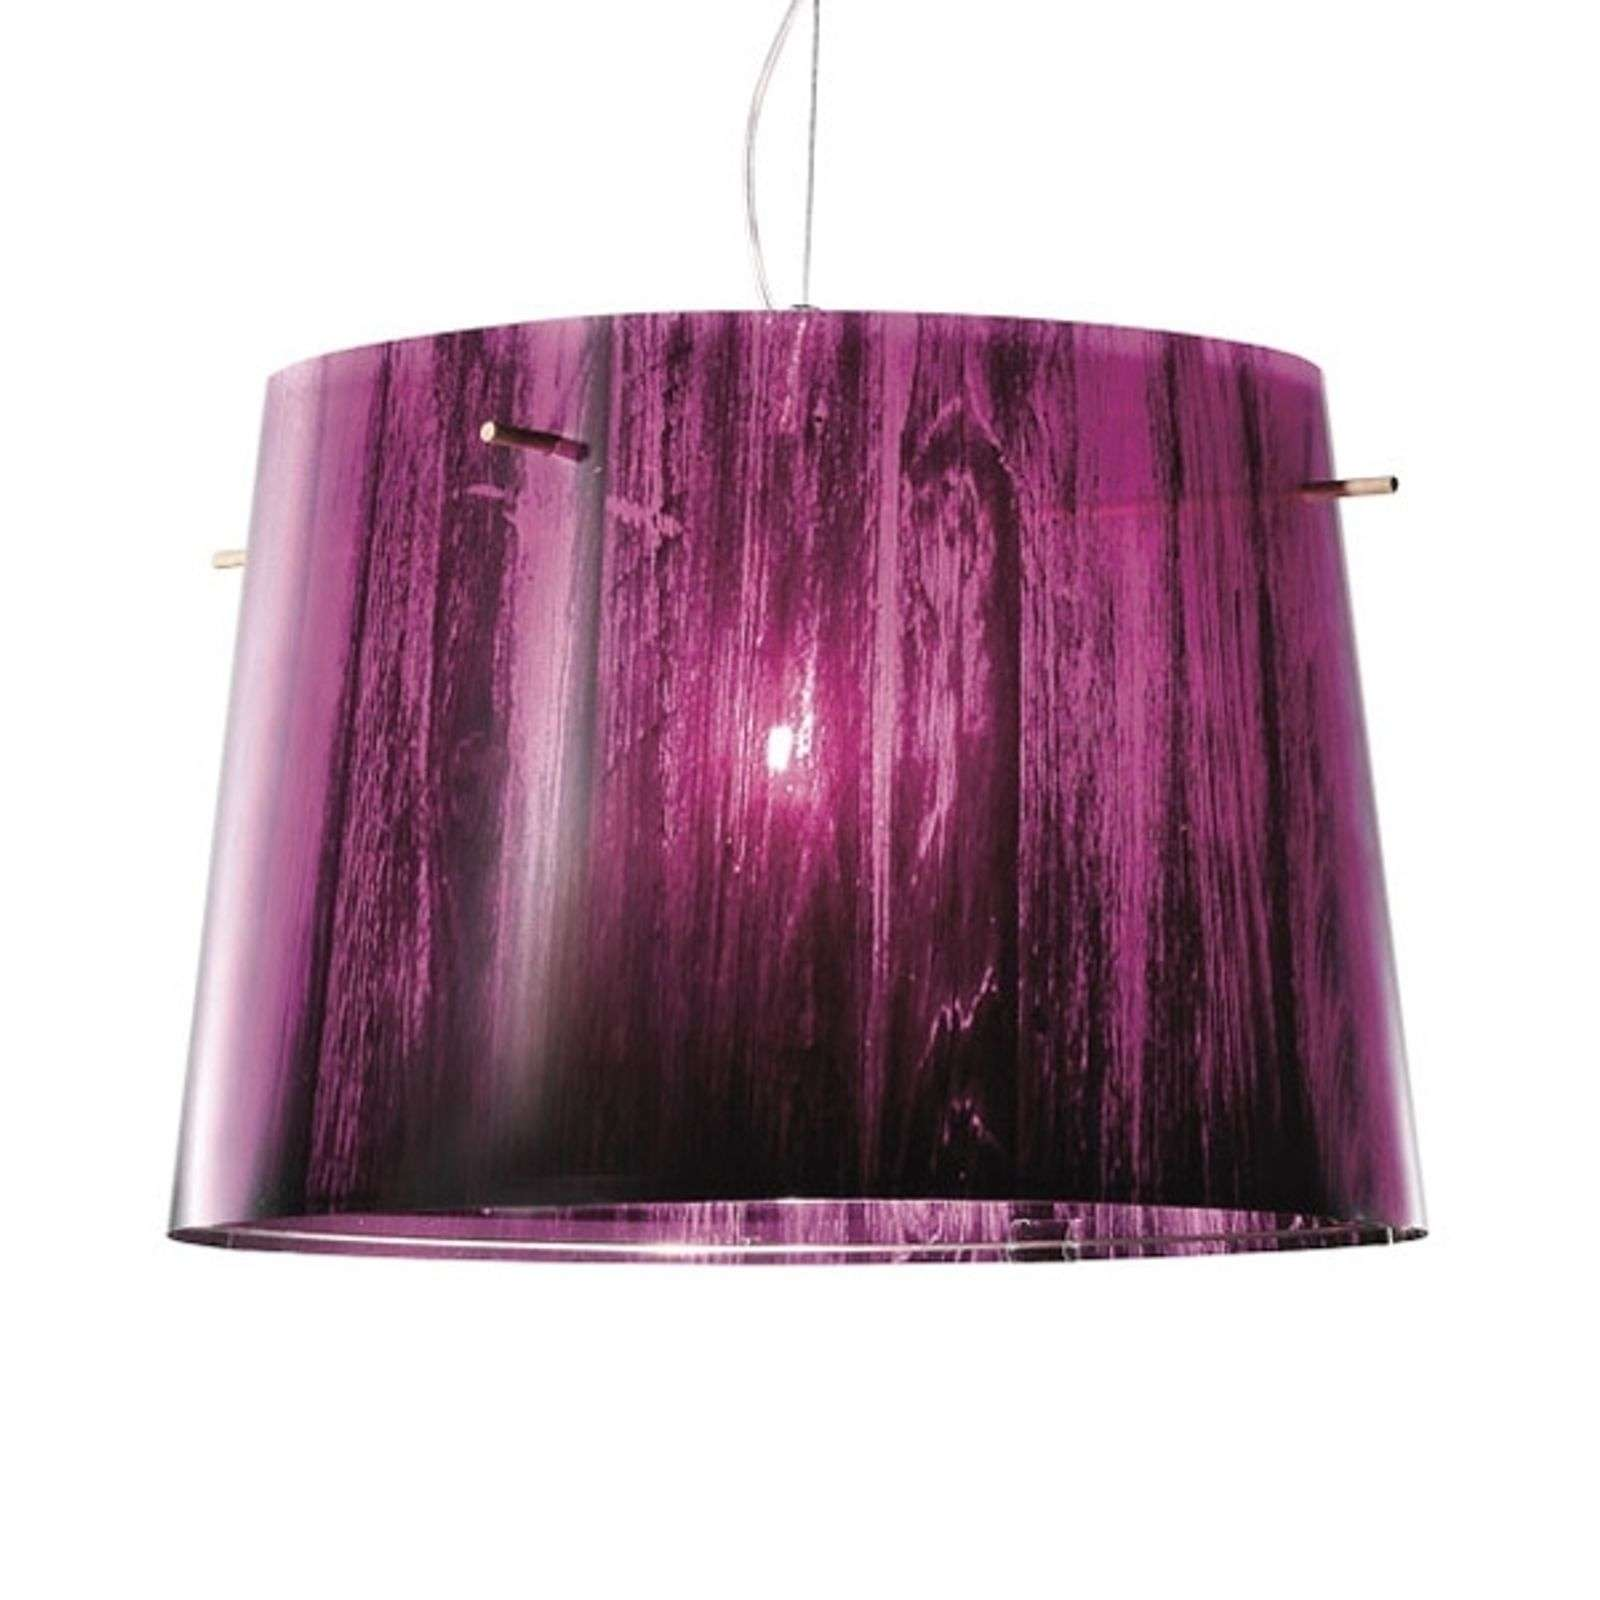 Joli dégradé coloré - Suspension Woody, violet